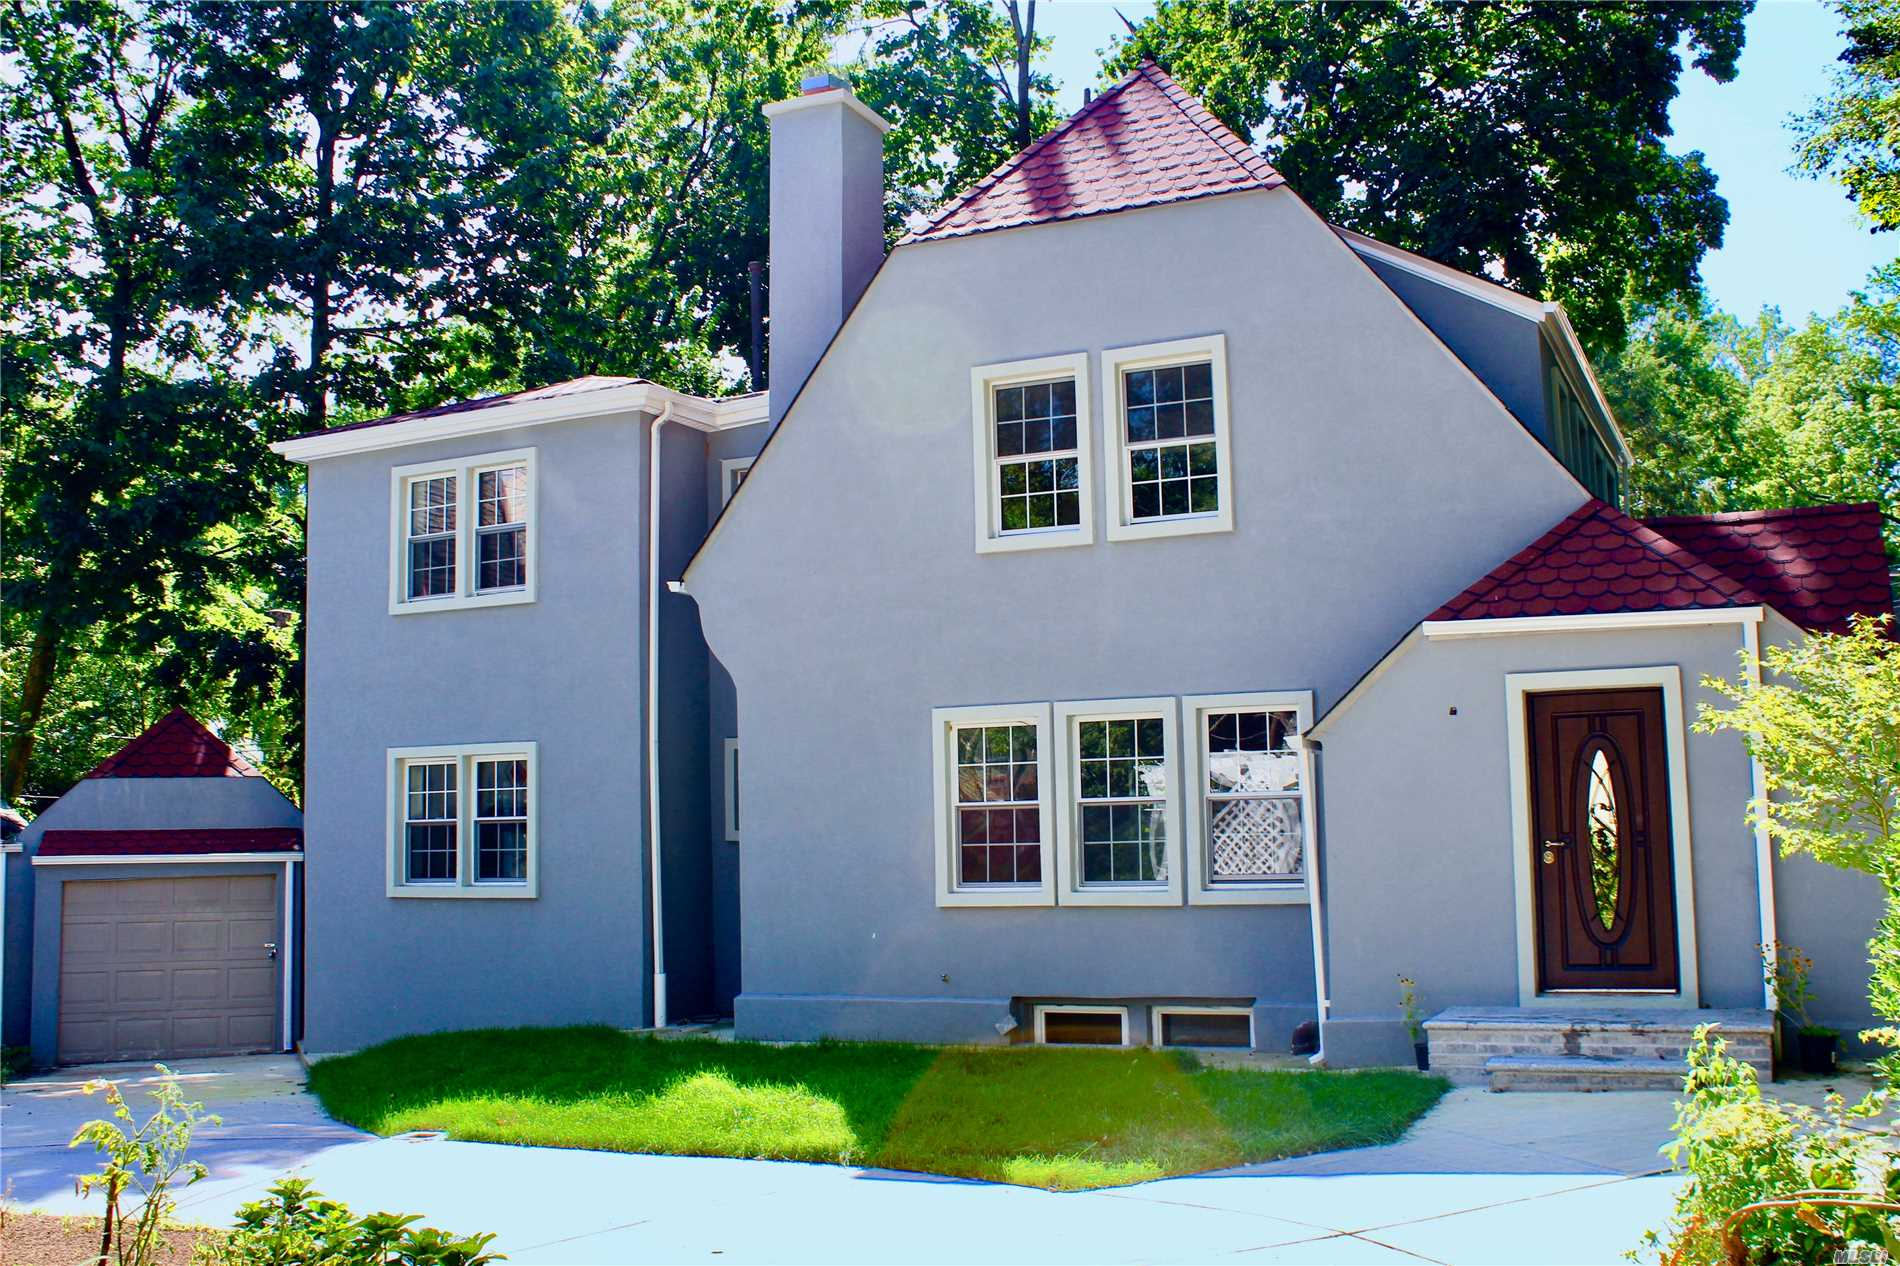 Large charming colonial -- Totally renovated! New modern kitchen, 5 full modern baths tiled, new windows, new mahganey floors, every door is new, modern lighting new heating system, new cac, new roof, new stucco. fiinished basement. Nestled in the end of the cul de sac- very private and very quiet. BLOCK away from Forest Park and minutes from train, subway houses of worship and shoppingl. All information deemed reliable but broker assumes no responsibility for information